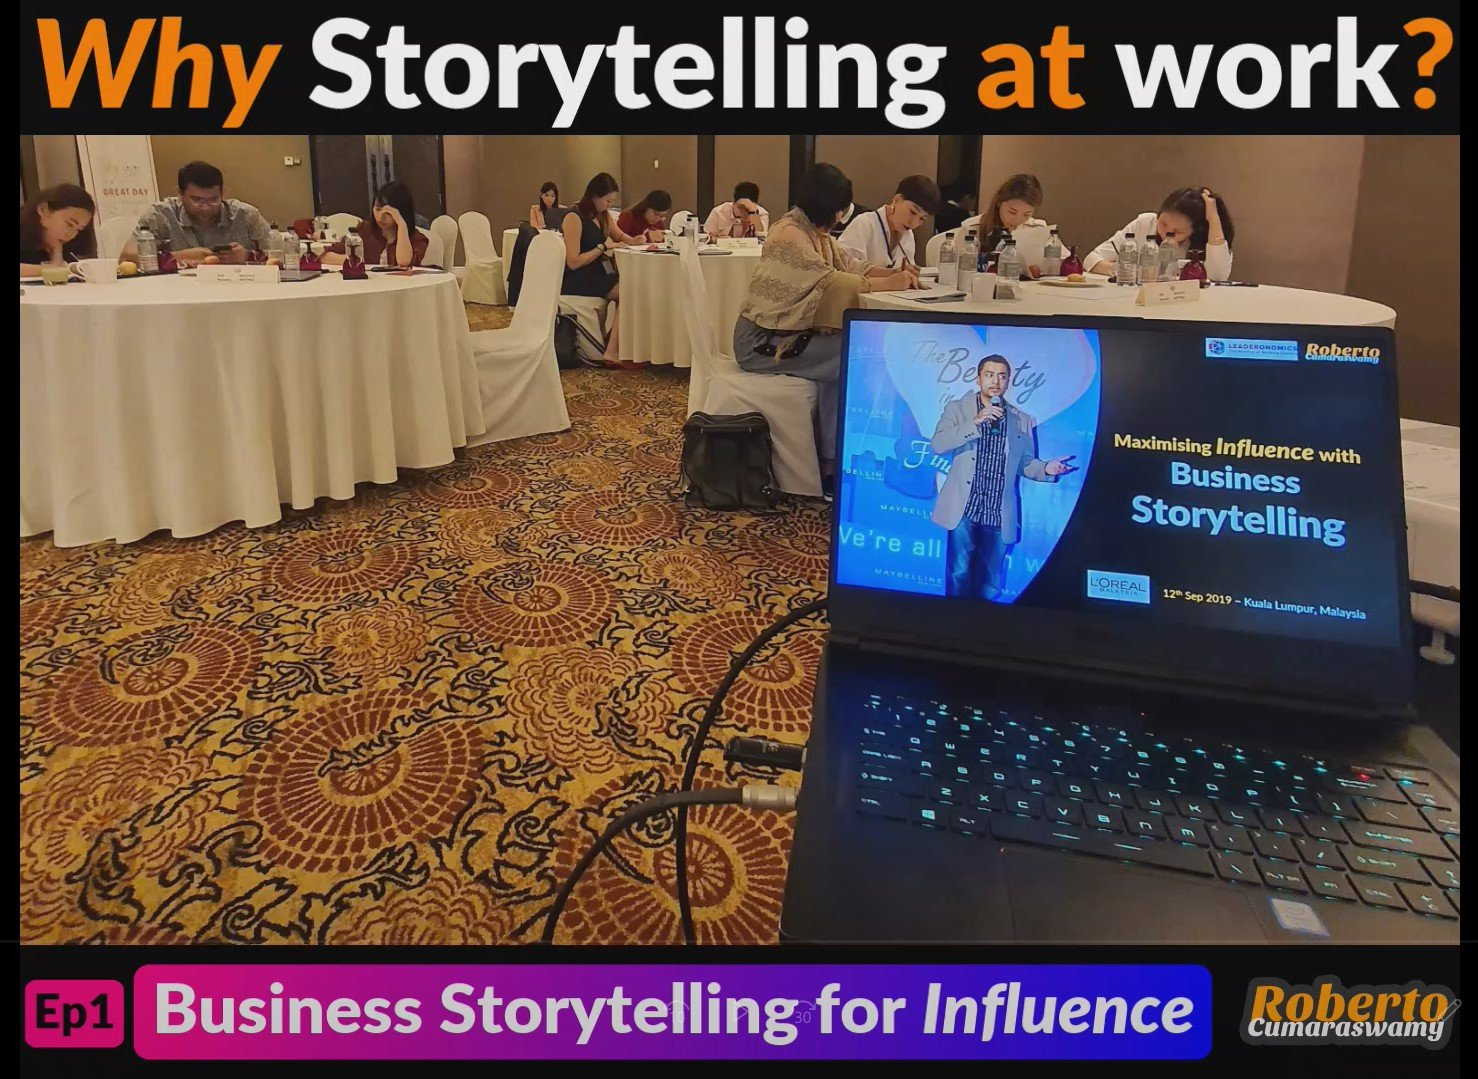 Business Storytelling for Influence